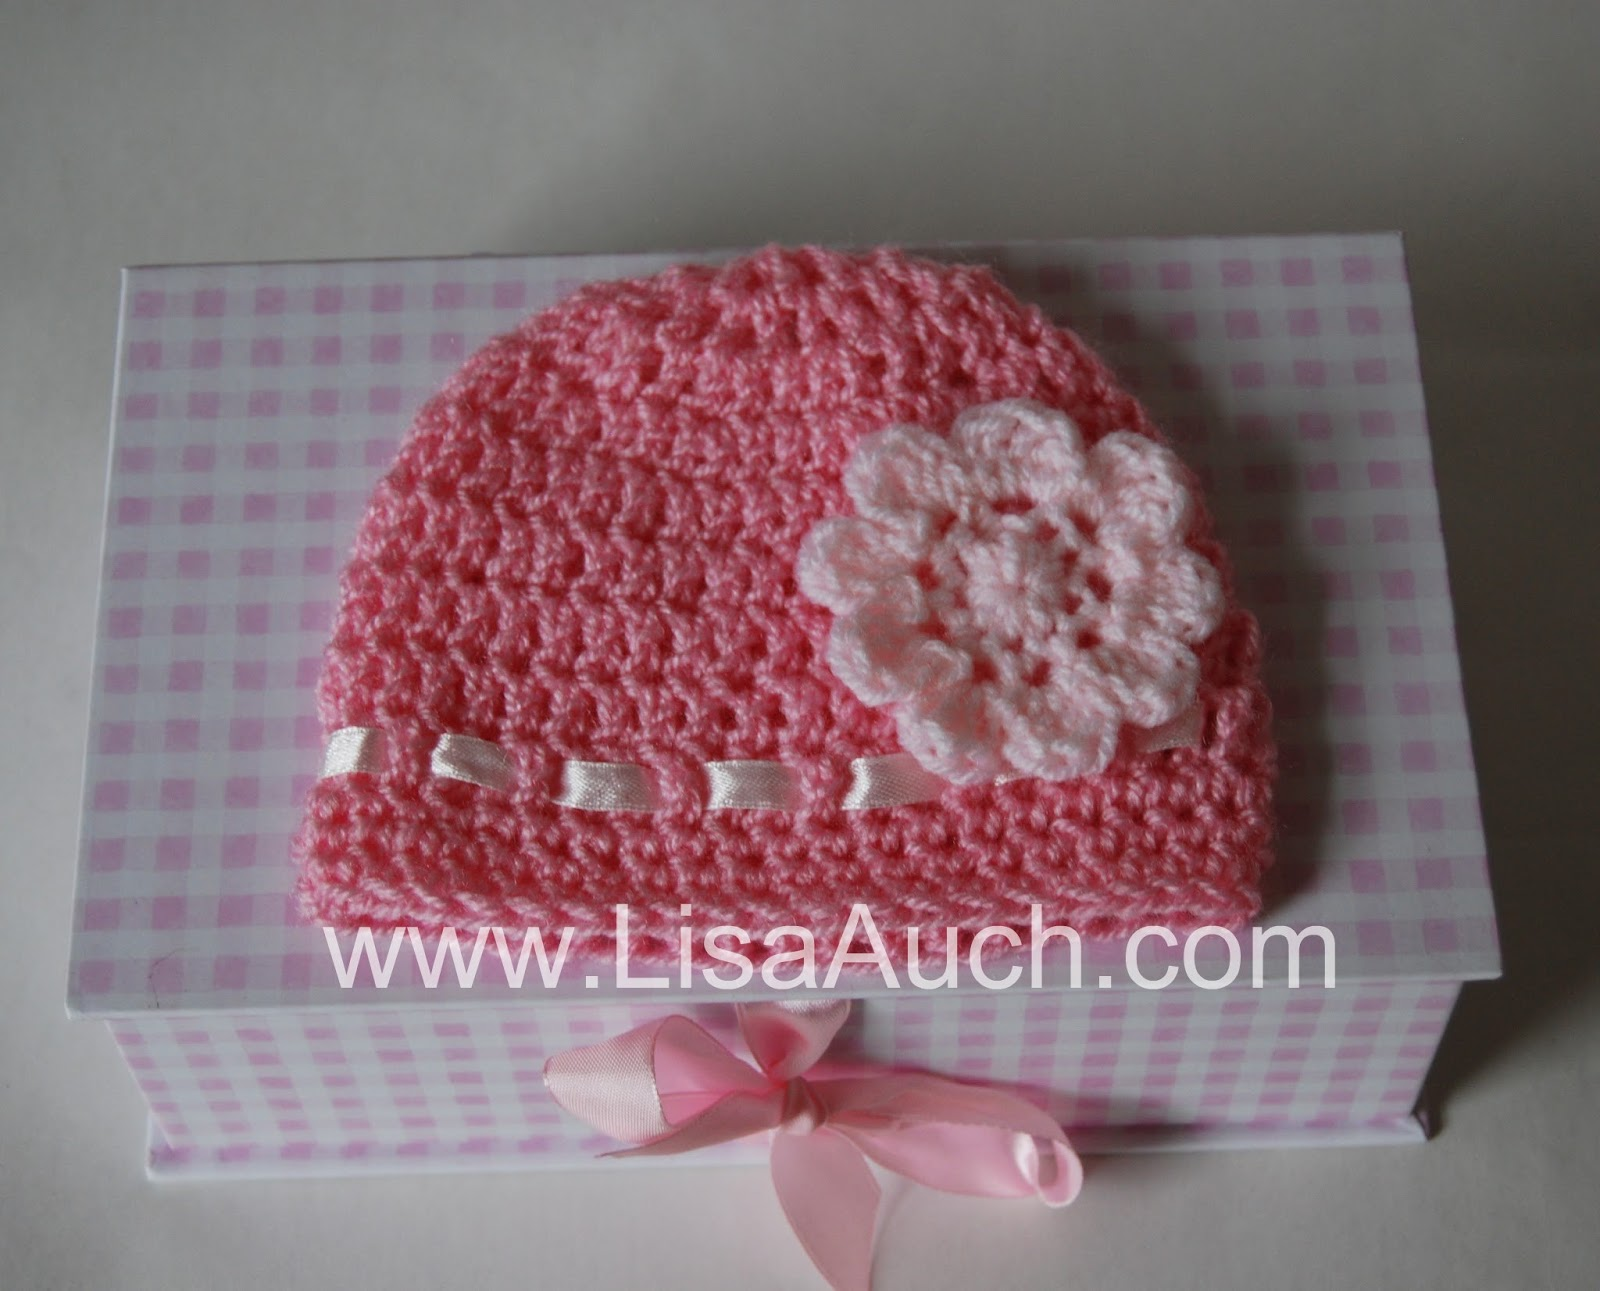 Free Crochet Patterns For Newborn Baby Hats : Crochet Baby Shoes Patterns Search Results Calendar 2015